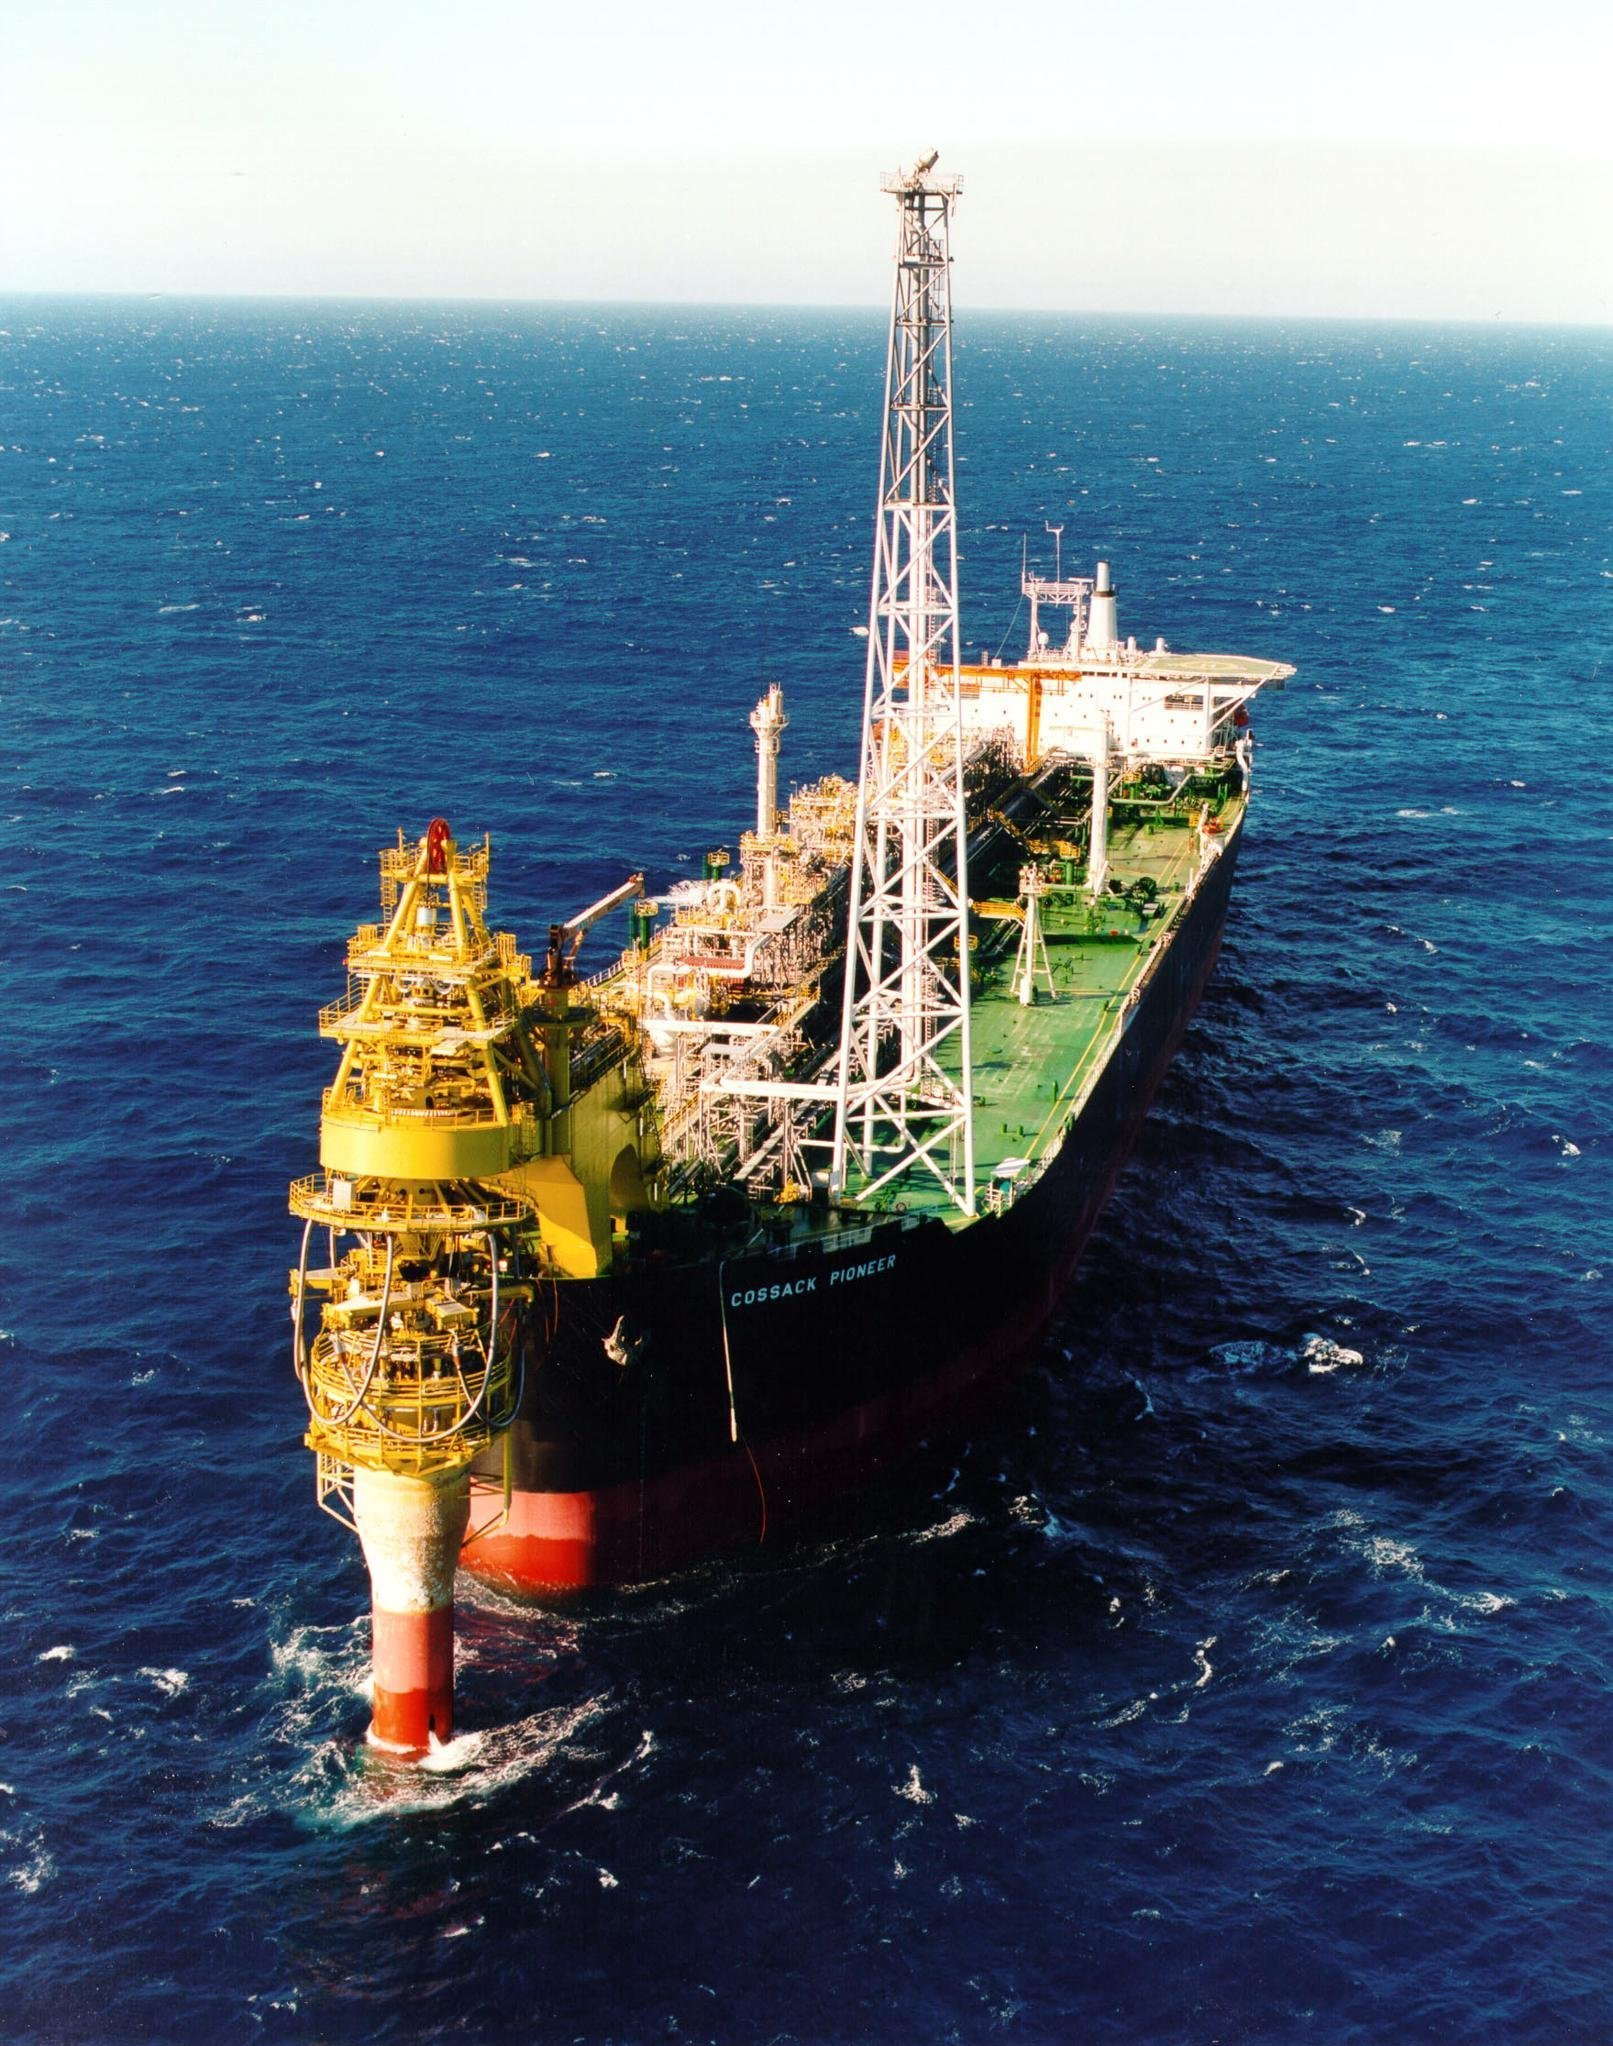 An undated handout photo shows Australian resources giant Woodside's Cossack Pioneer oil production facility in the North West Shelf (NWS) gas project, which produces a third of Australia's oil and half of its natural gas, off the northwest coast of Australia (File)